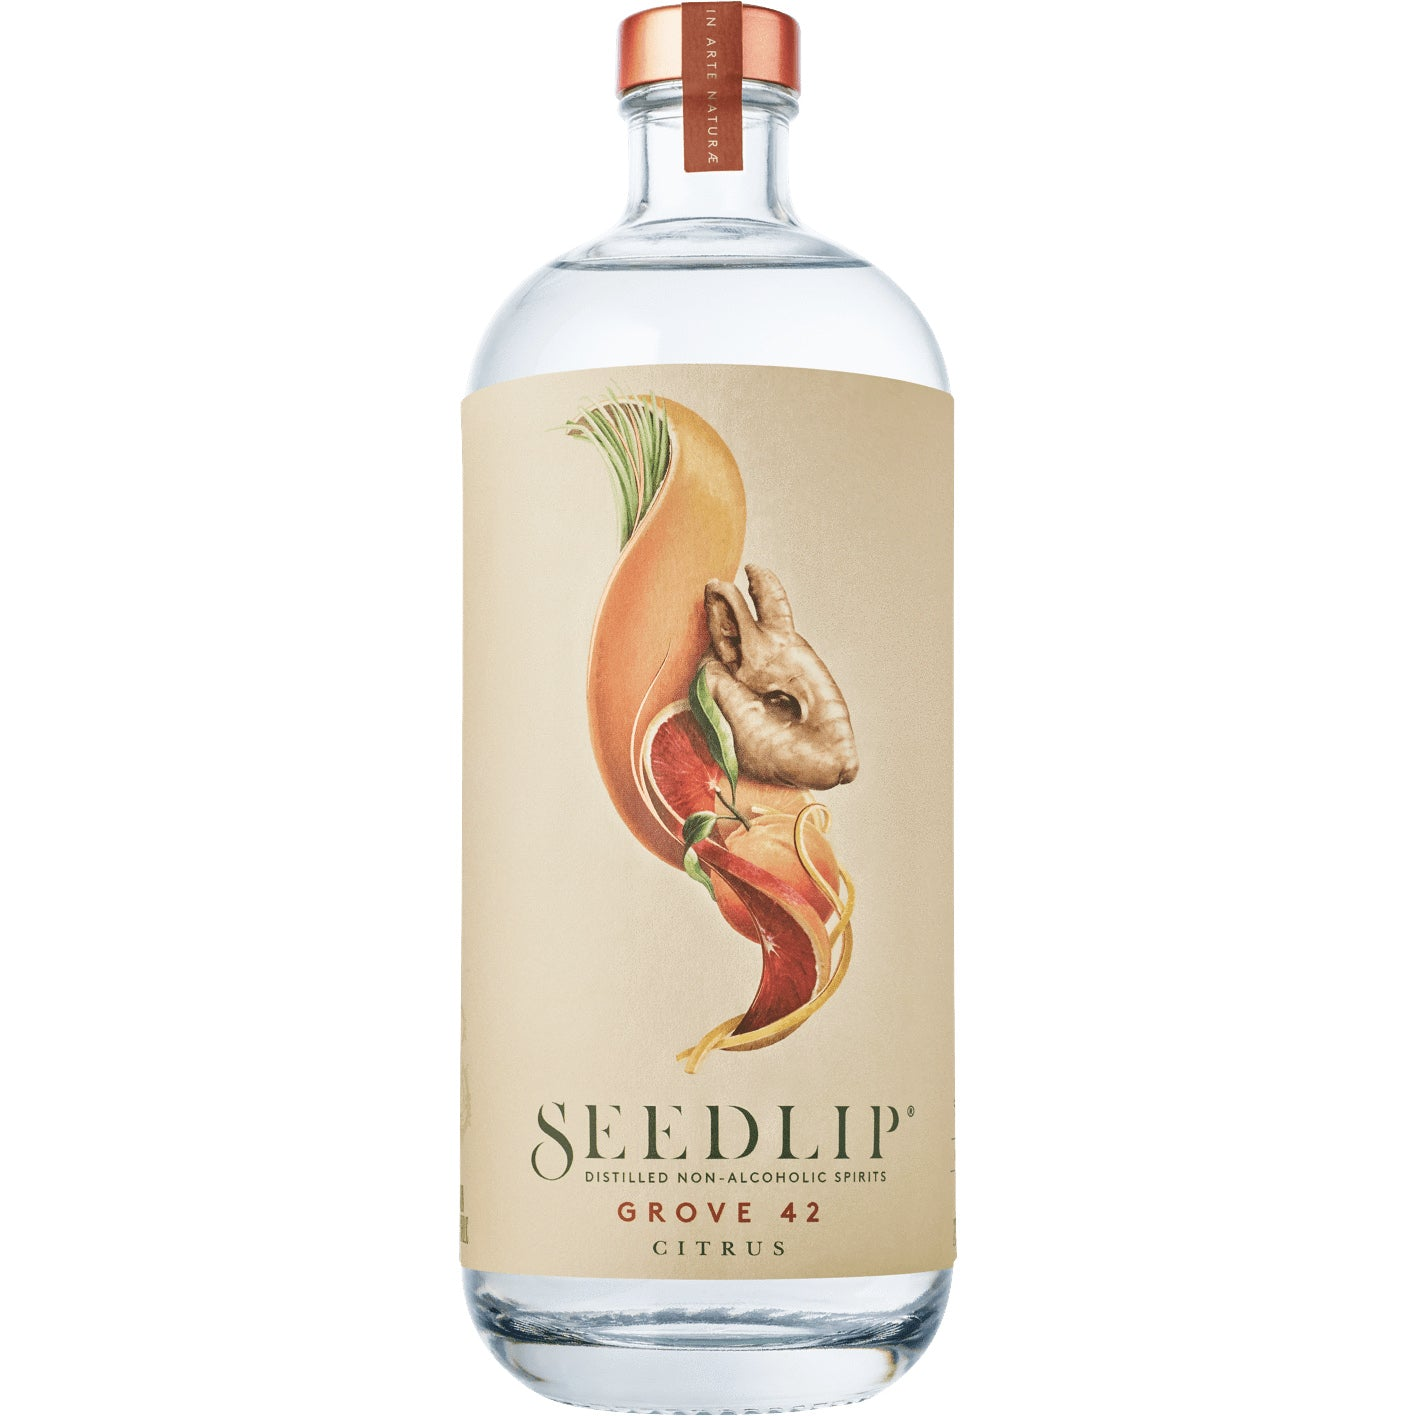 Seedlip Grove Distilled Non-Alcoholic Spirit